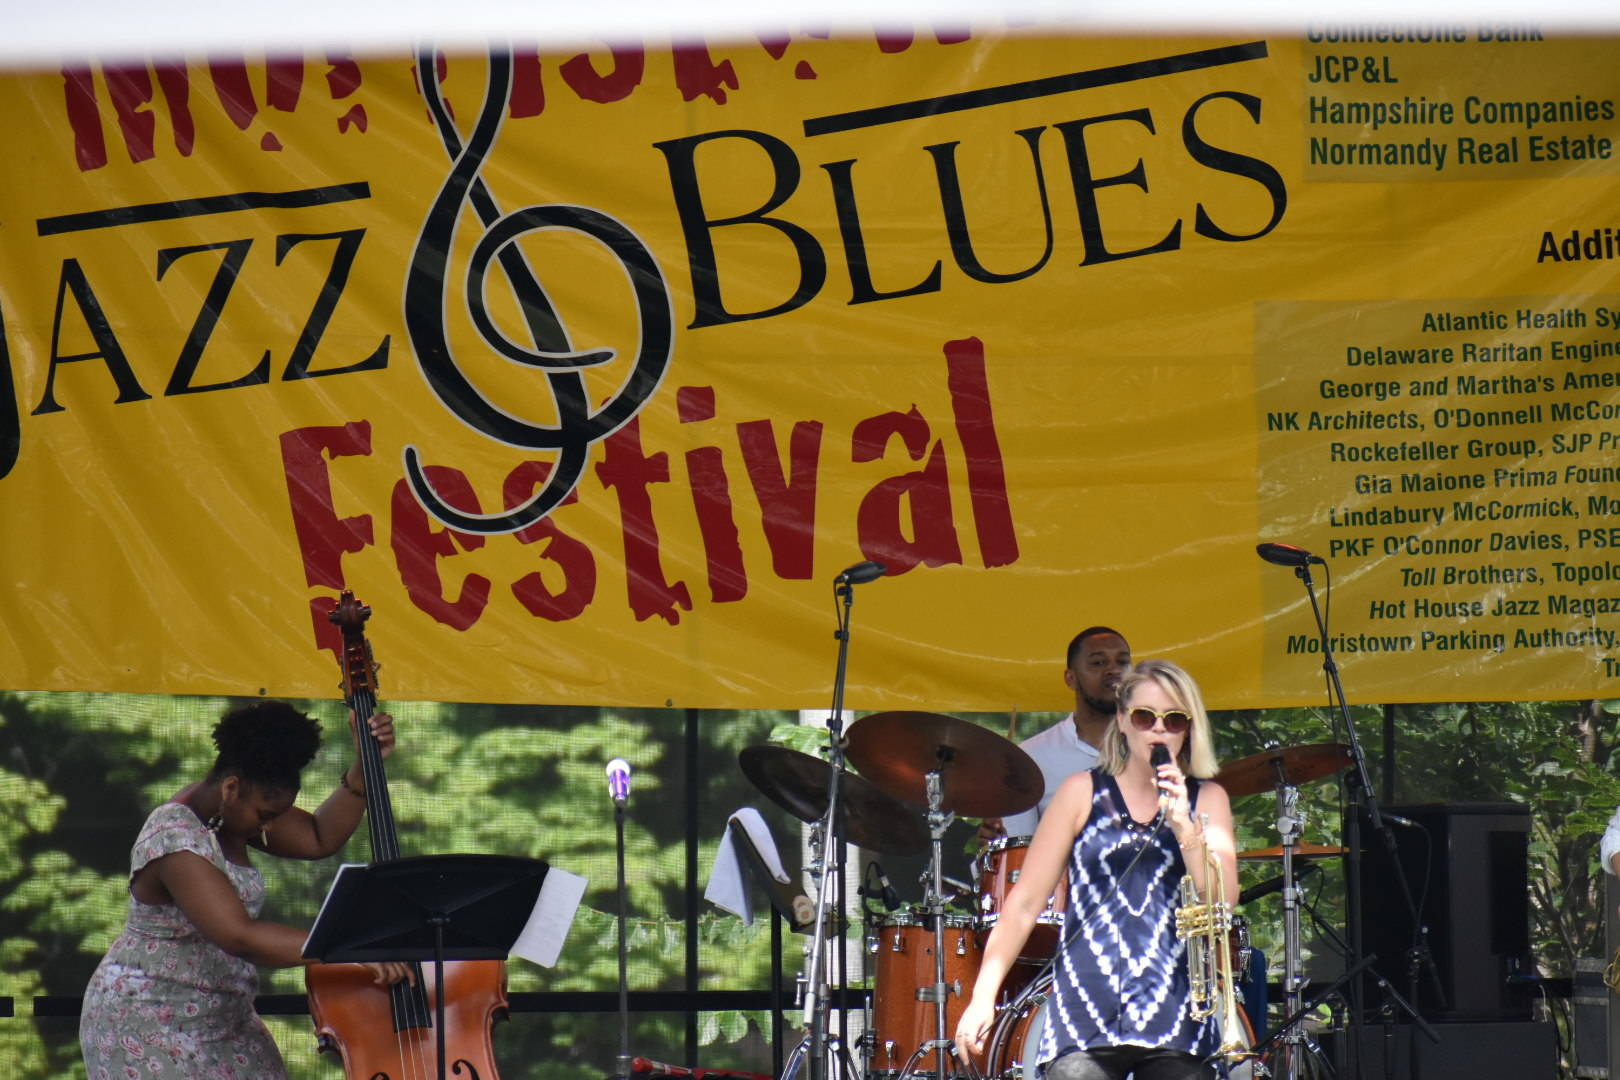 Happening Now! The 8th Annual Morristown Jazz and Blues Festival